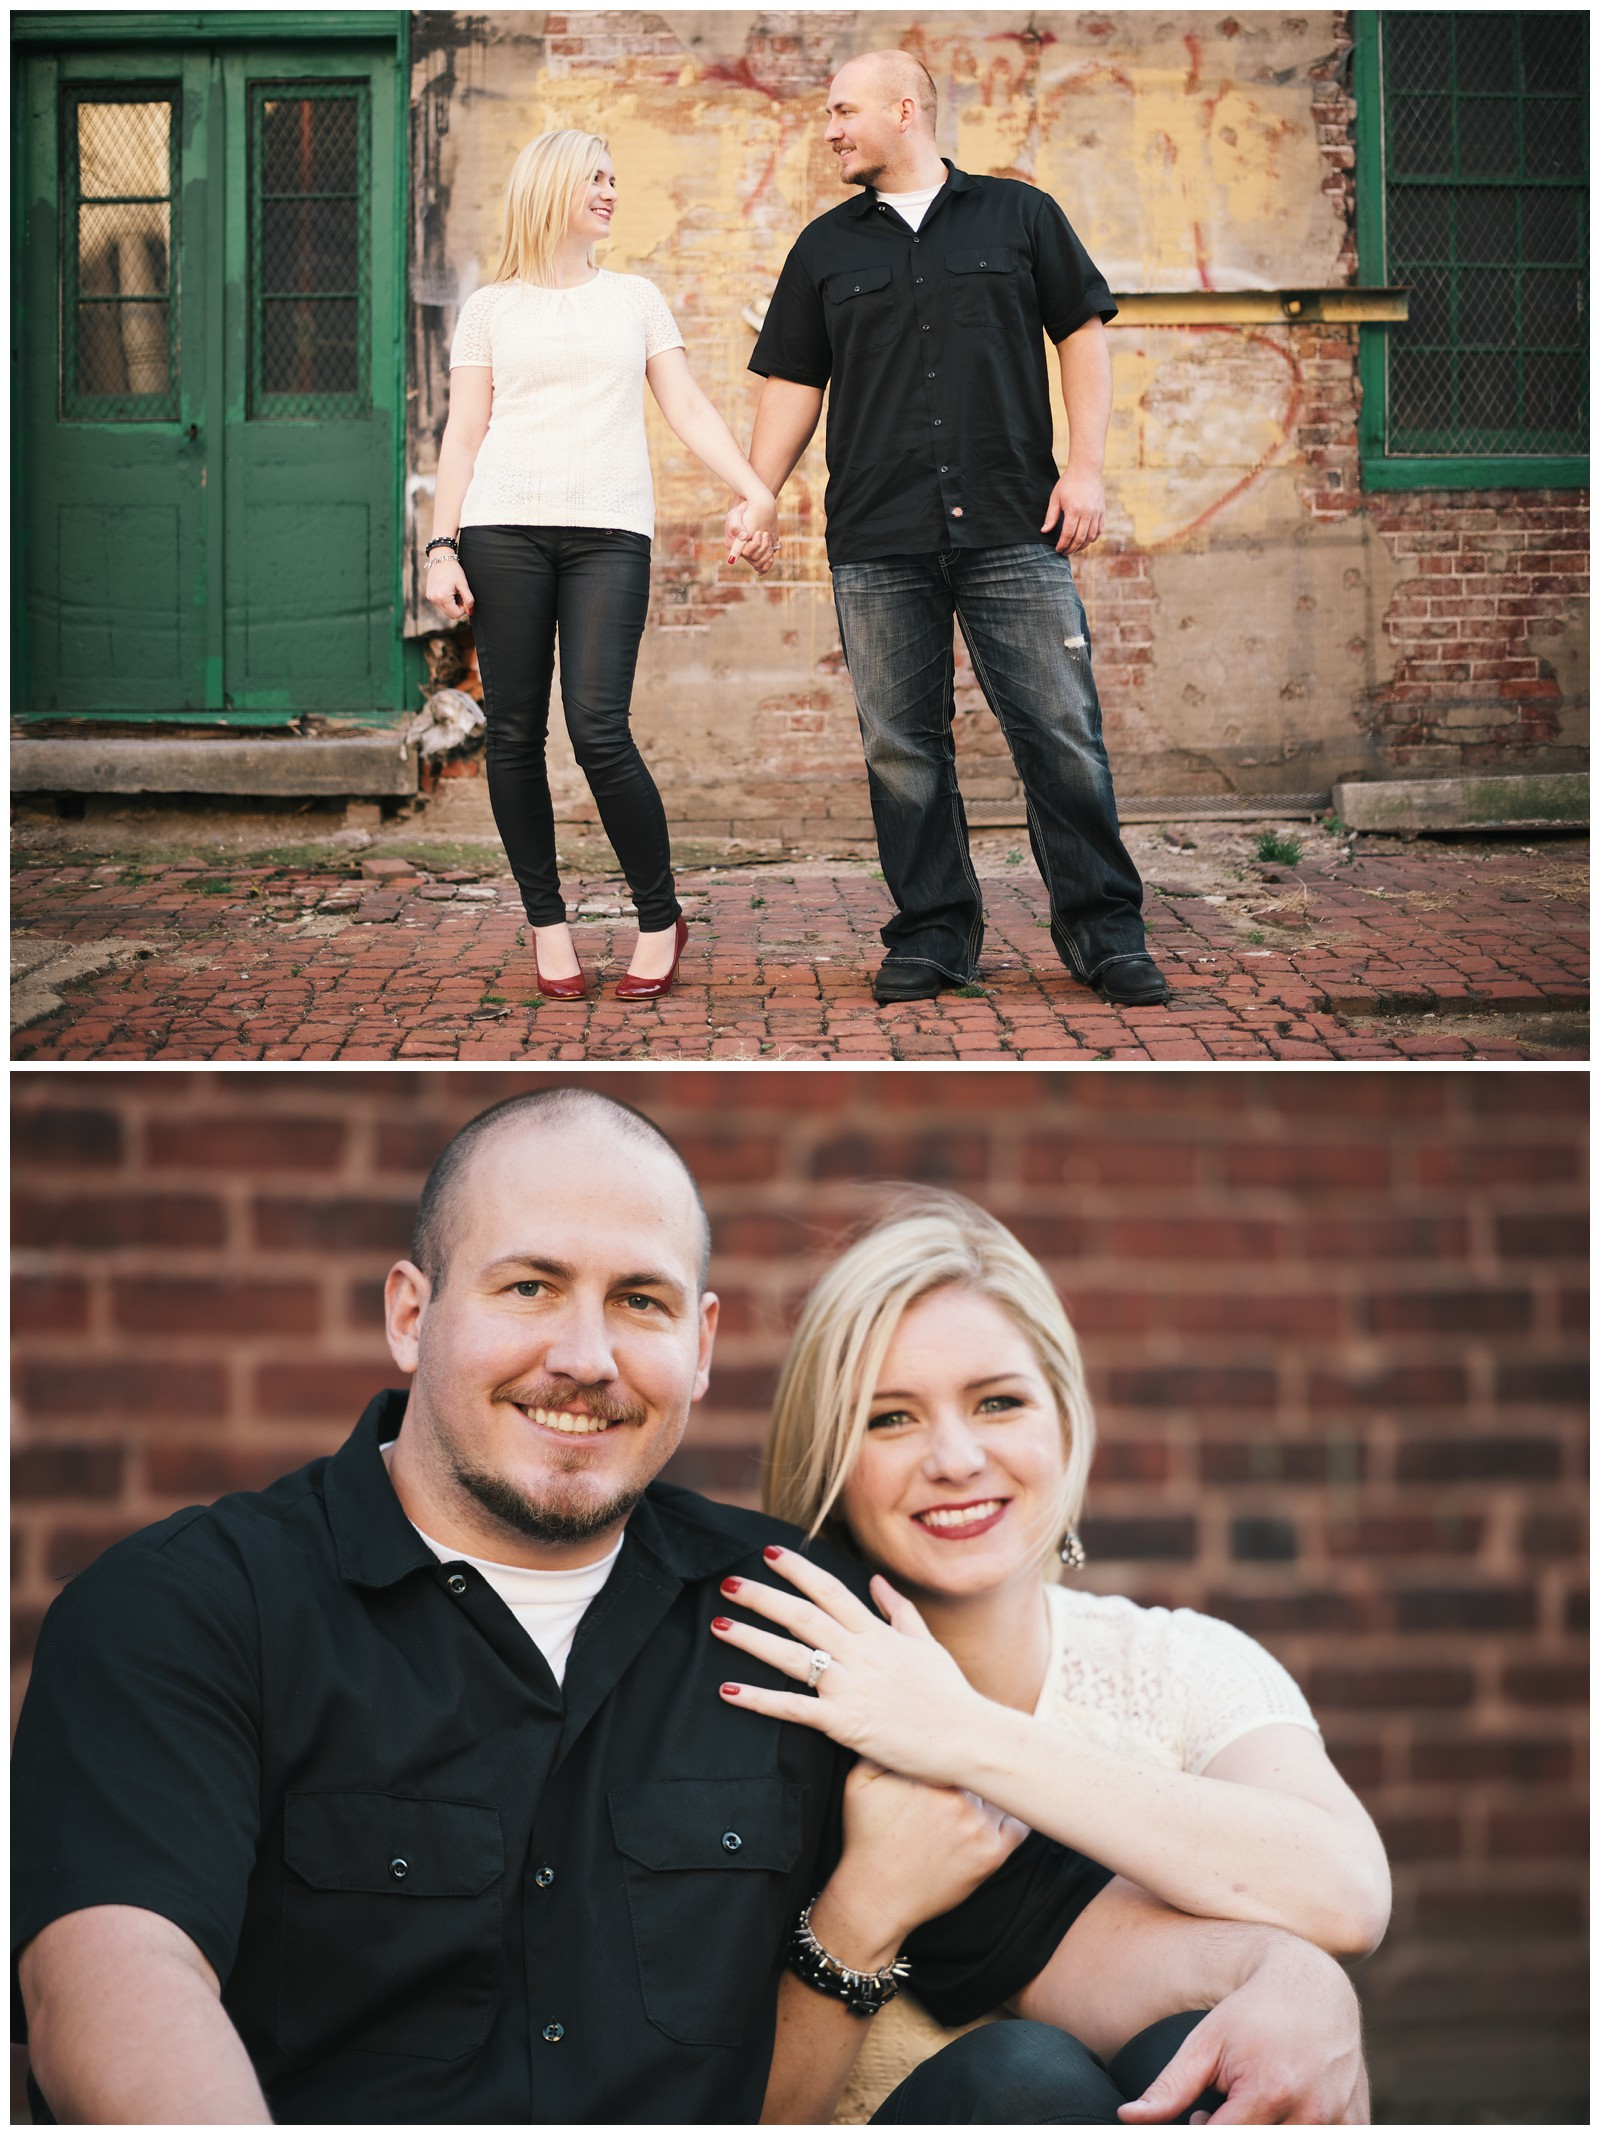 Devon and Josh's Engagement Photo Session, Philadelphia_0014